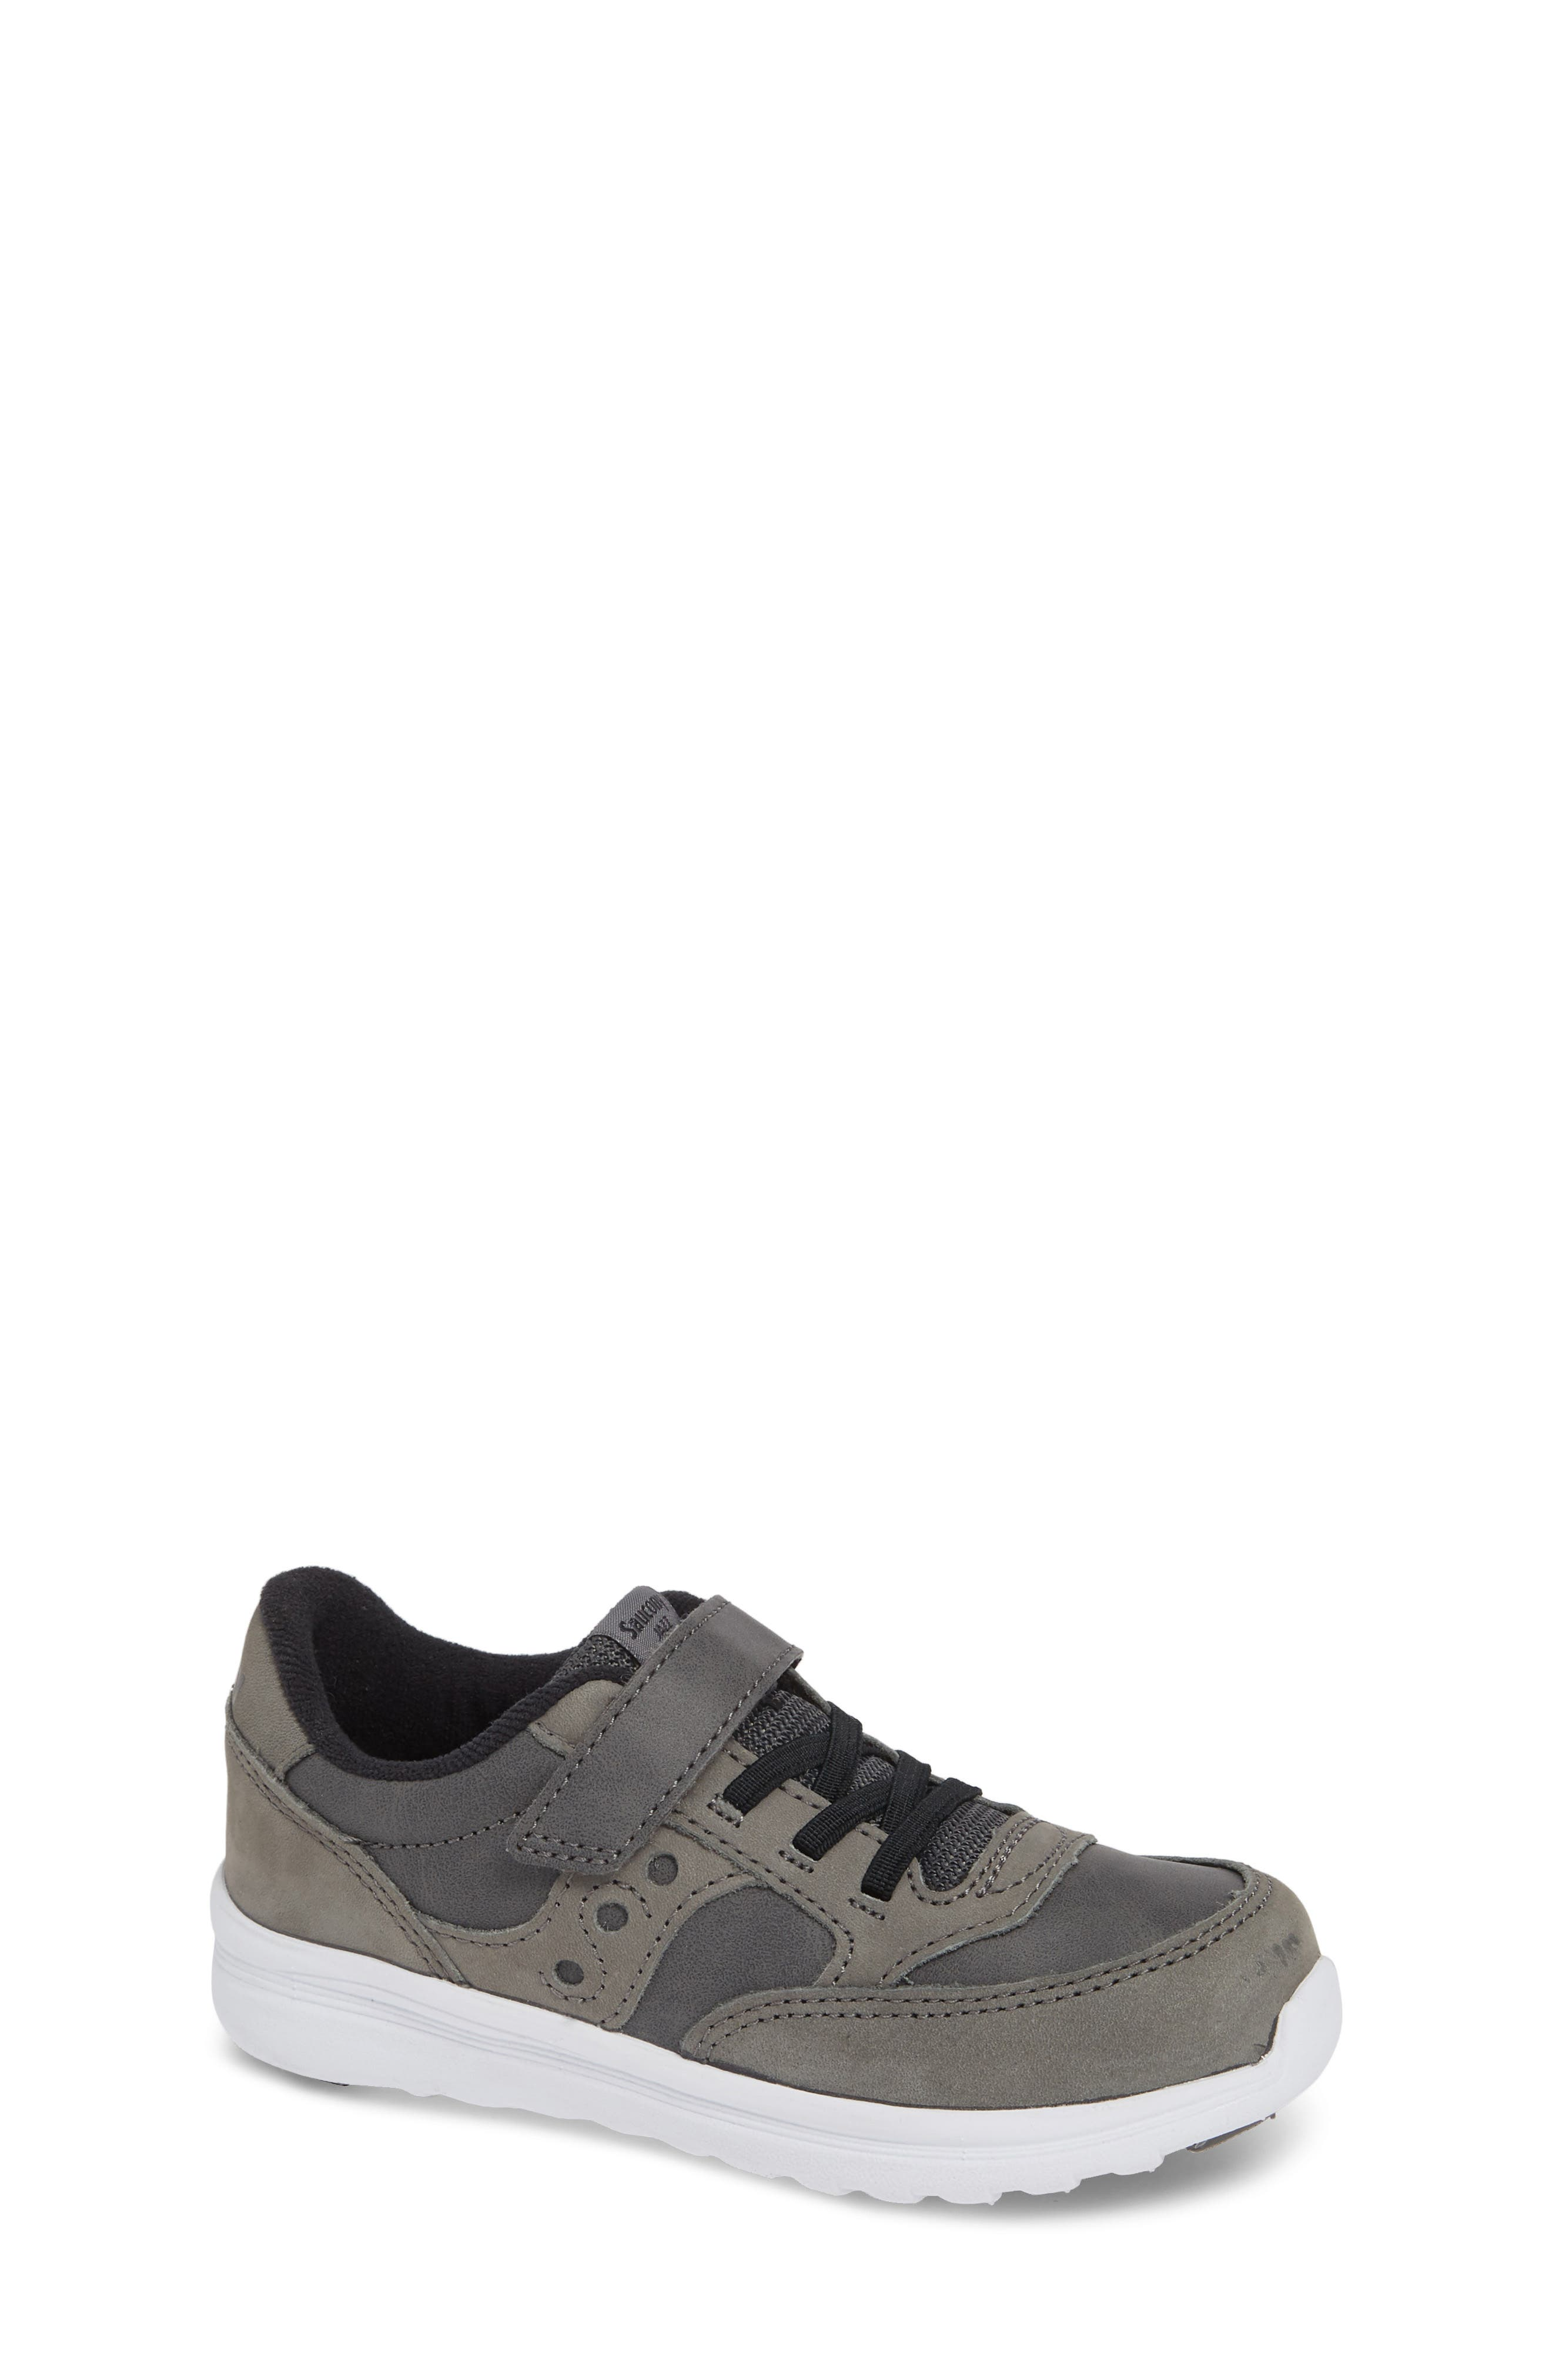 'Baby Jazz - Lite' Sneaker,                             Main thumbnail 1, color,                             GREY LEATHER